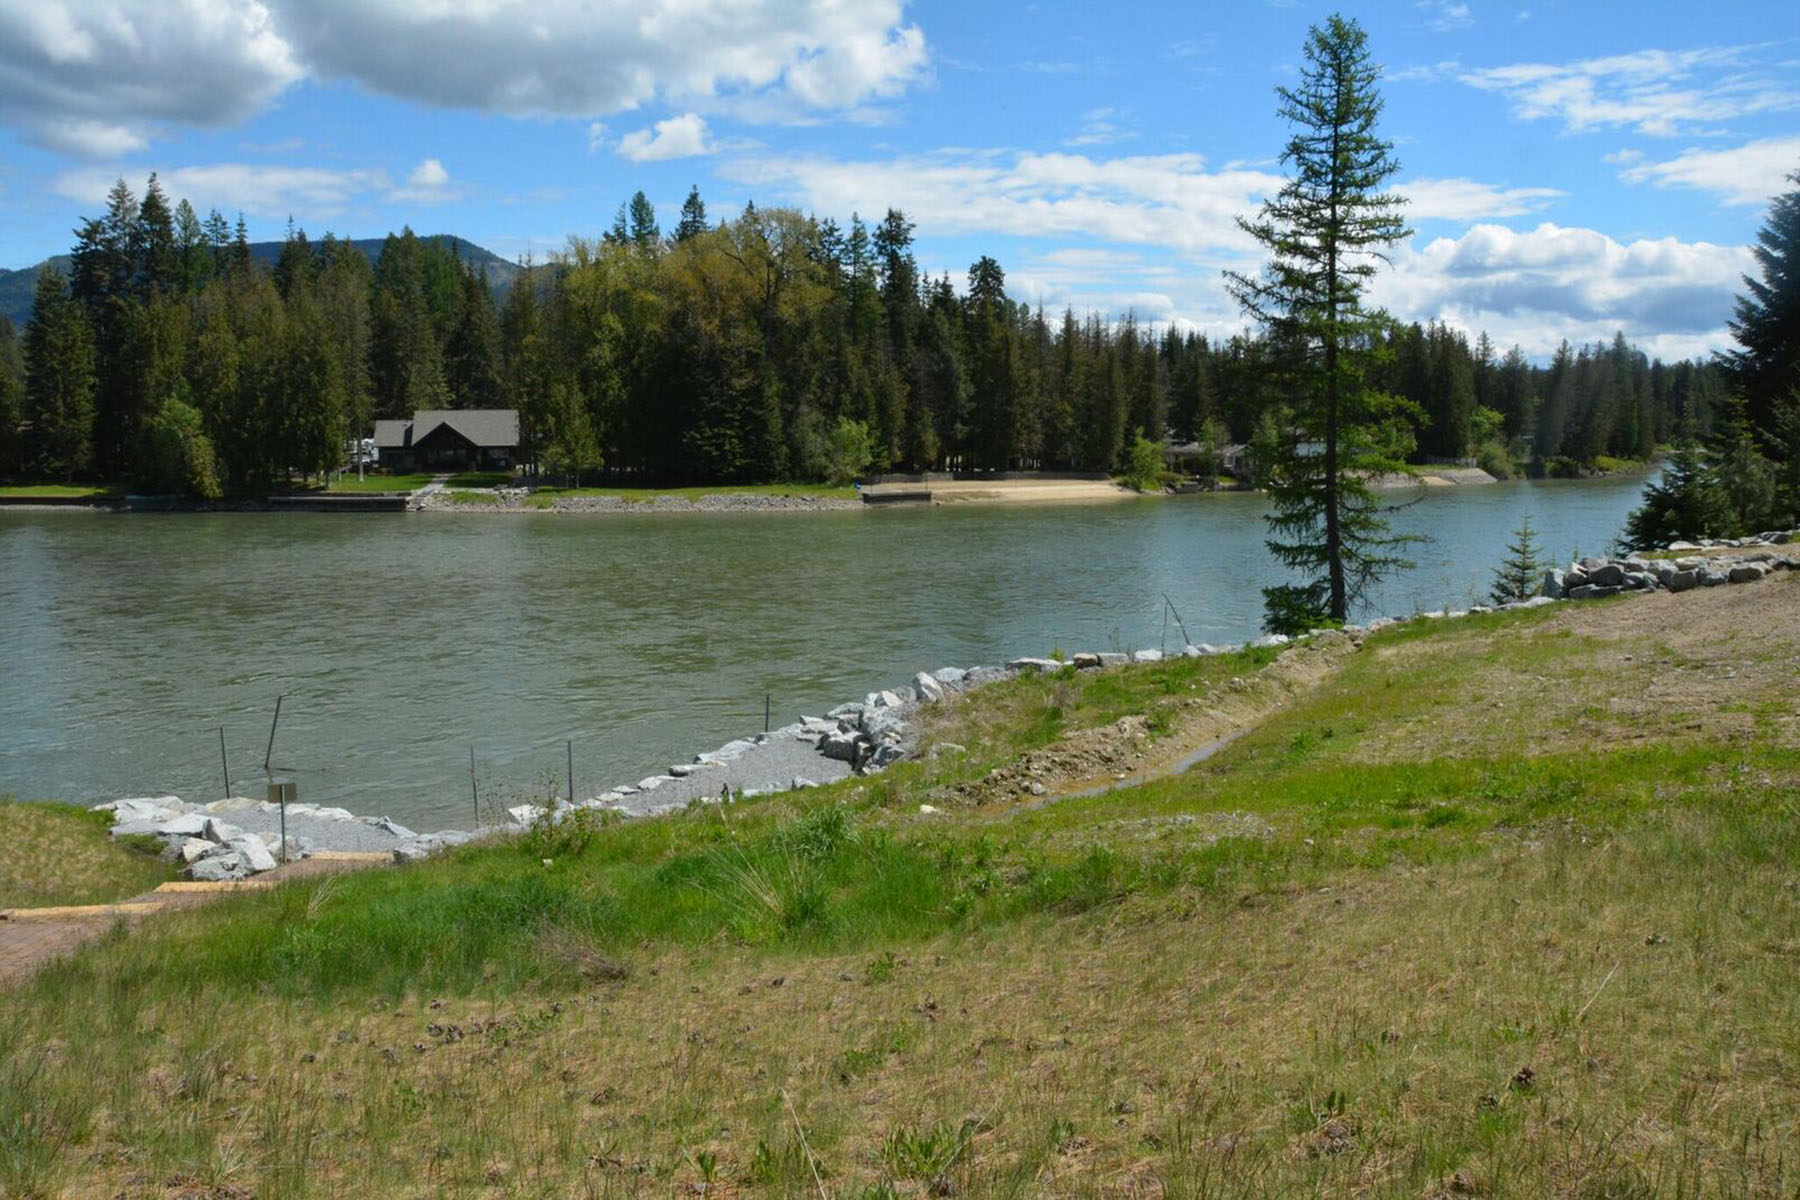 Terreno per Vendita alle ore Lot 6 Hidden River Estates 0 Larch Priest River, Idaho, 83856 Stati Uniti